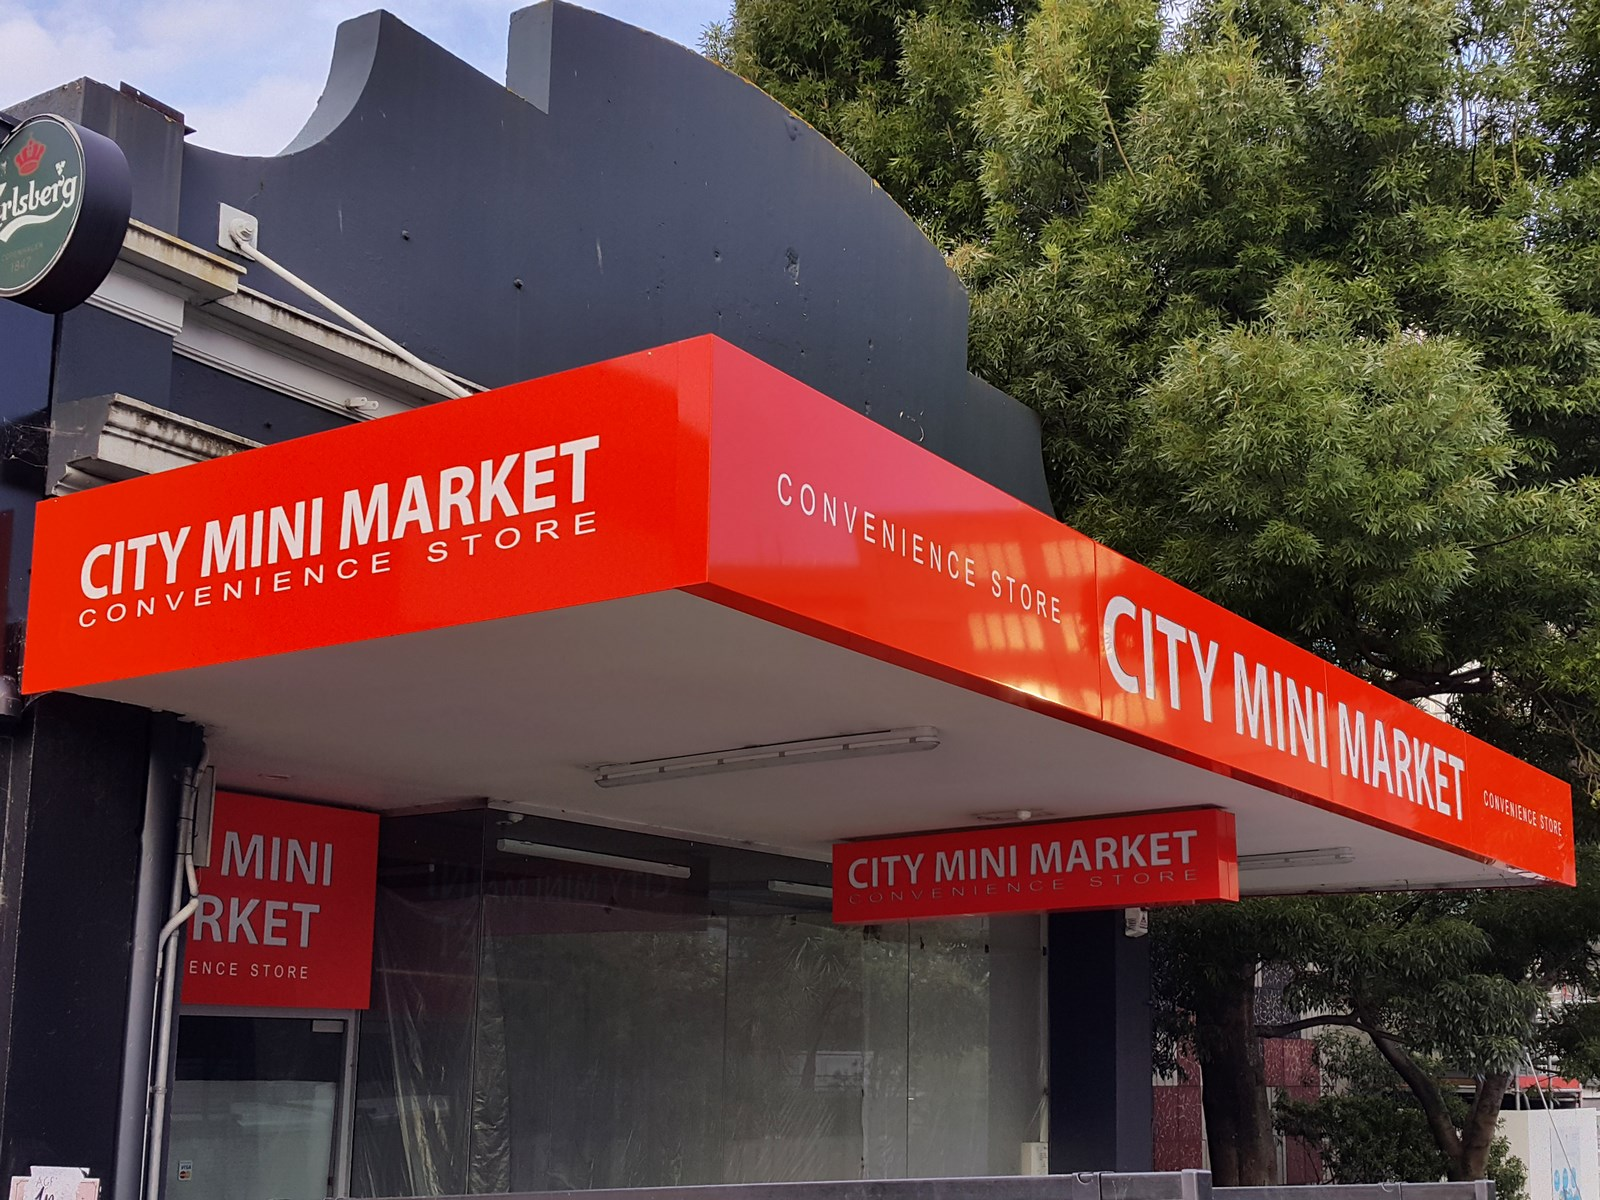 City mini market (Copy).jpg